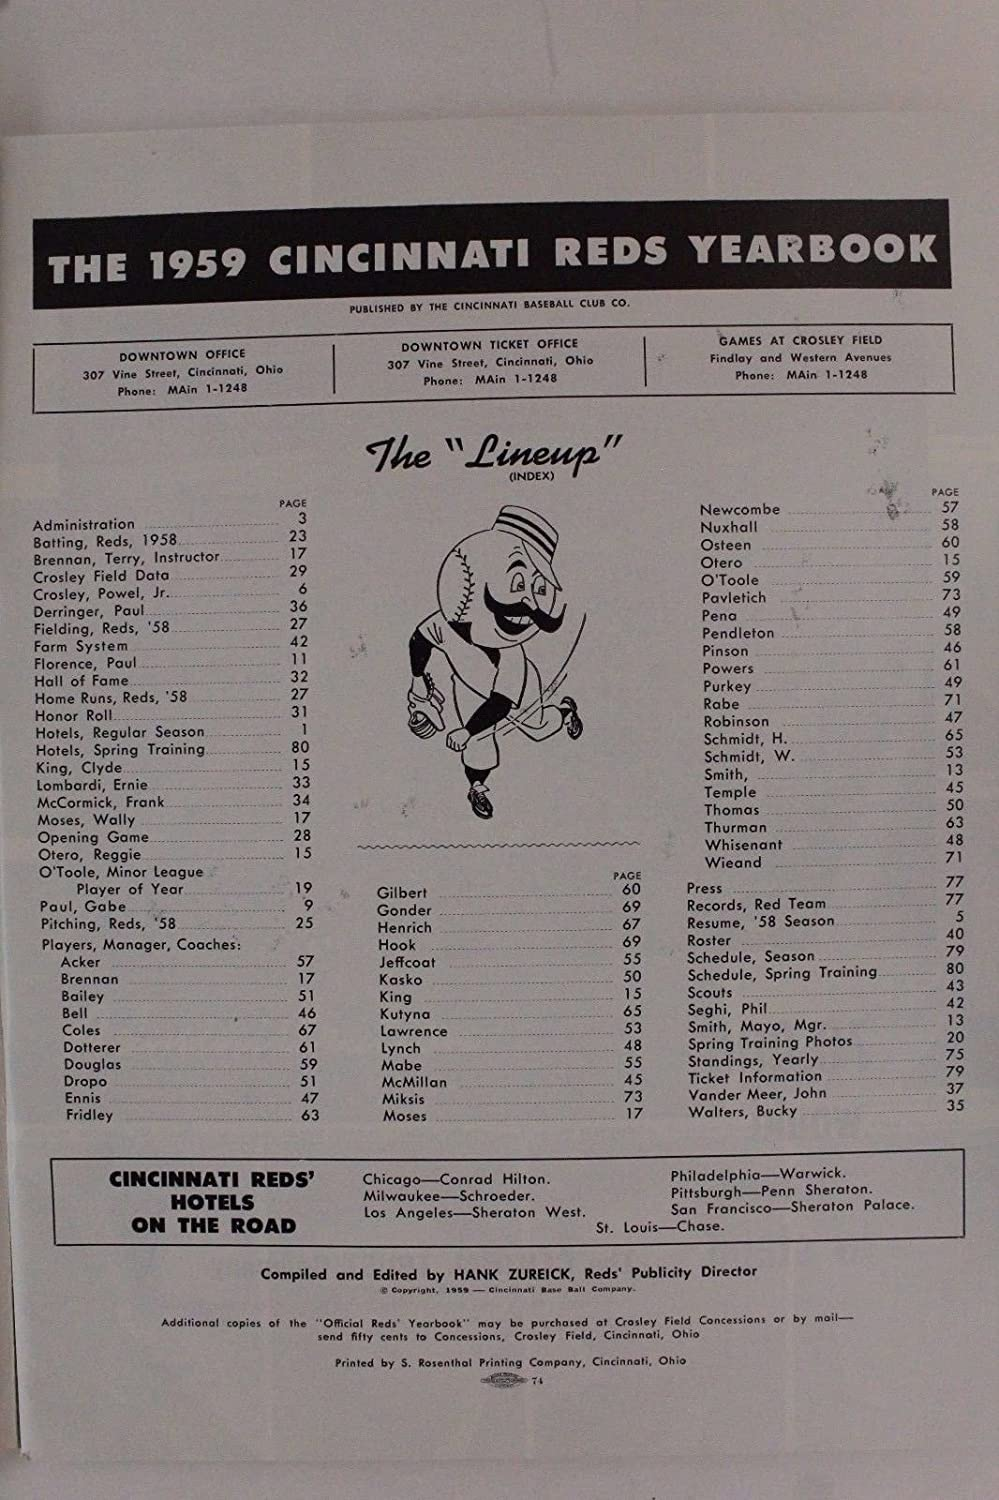 1959 Cincinnati Reds Yearbook Program Vintage Reds Memorabilia Spring Training at Amazons Sports Collectibles Store